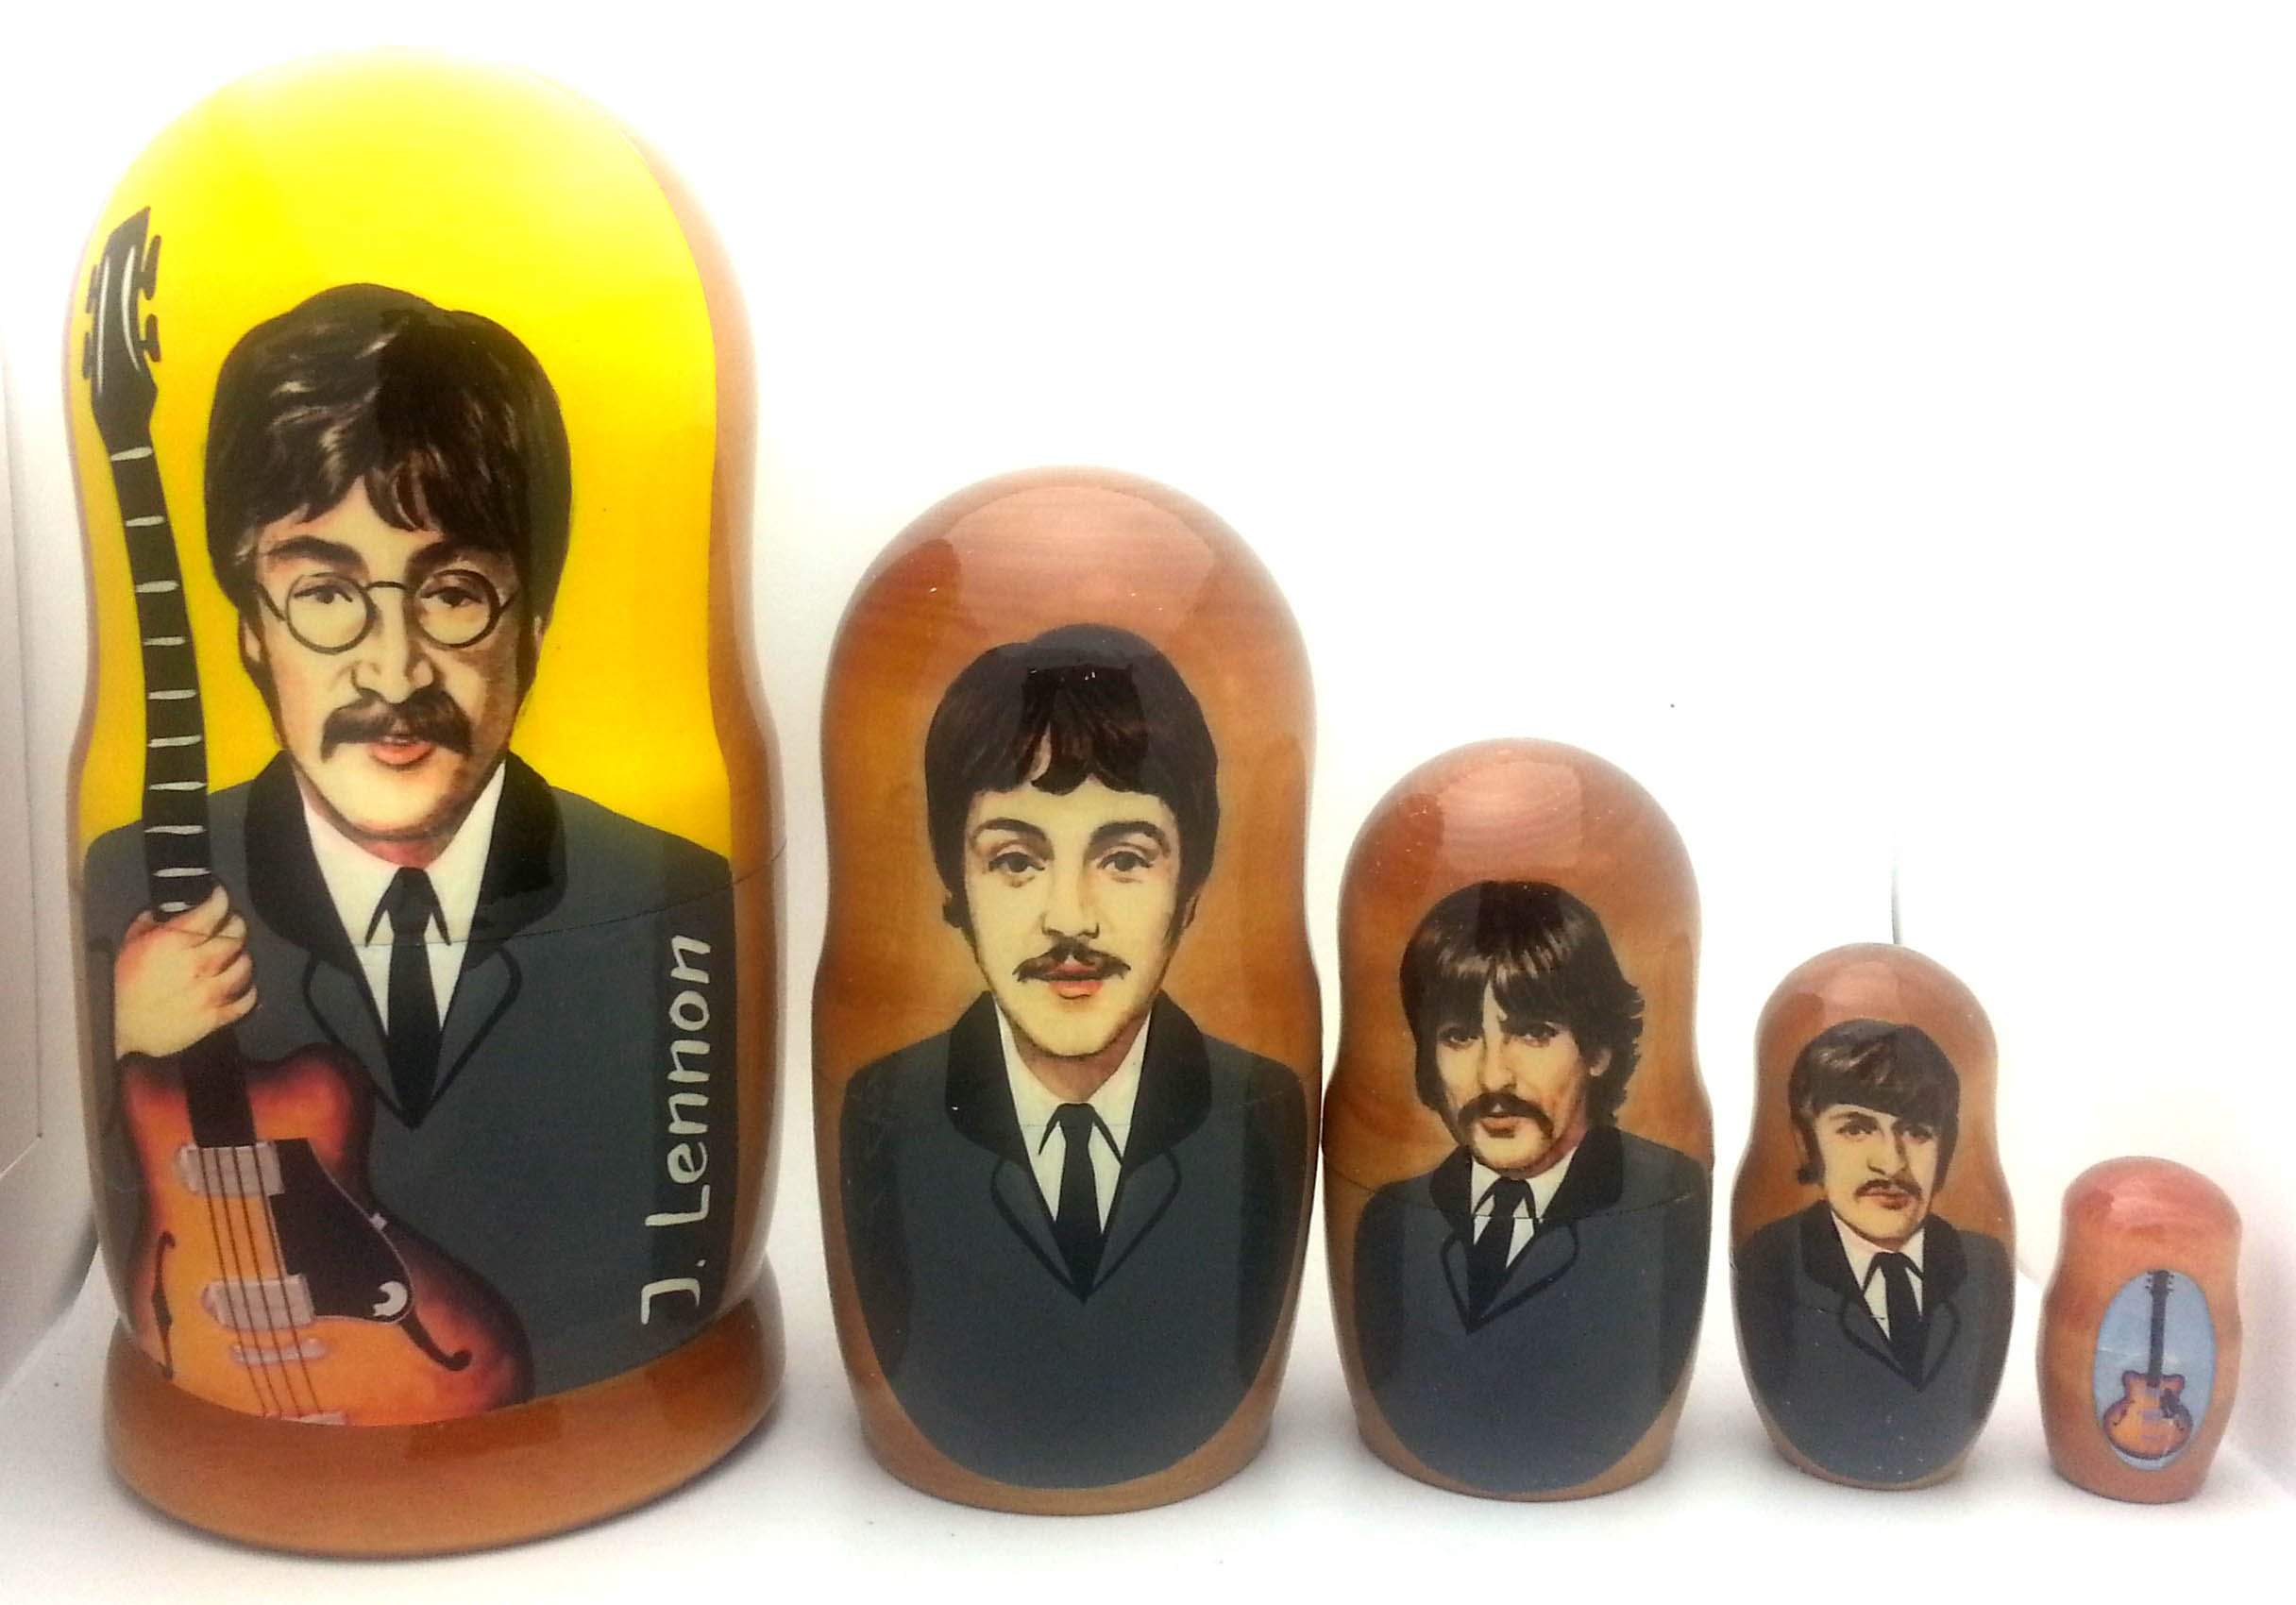 Beatles Russian Nesting dolls 5 piece DOLL Set 7'' Tall by BuyRussianGifts (Image #1)